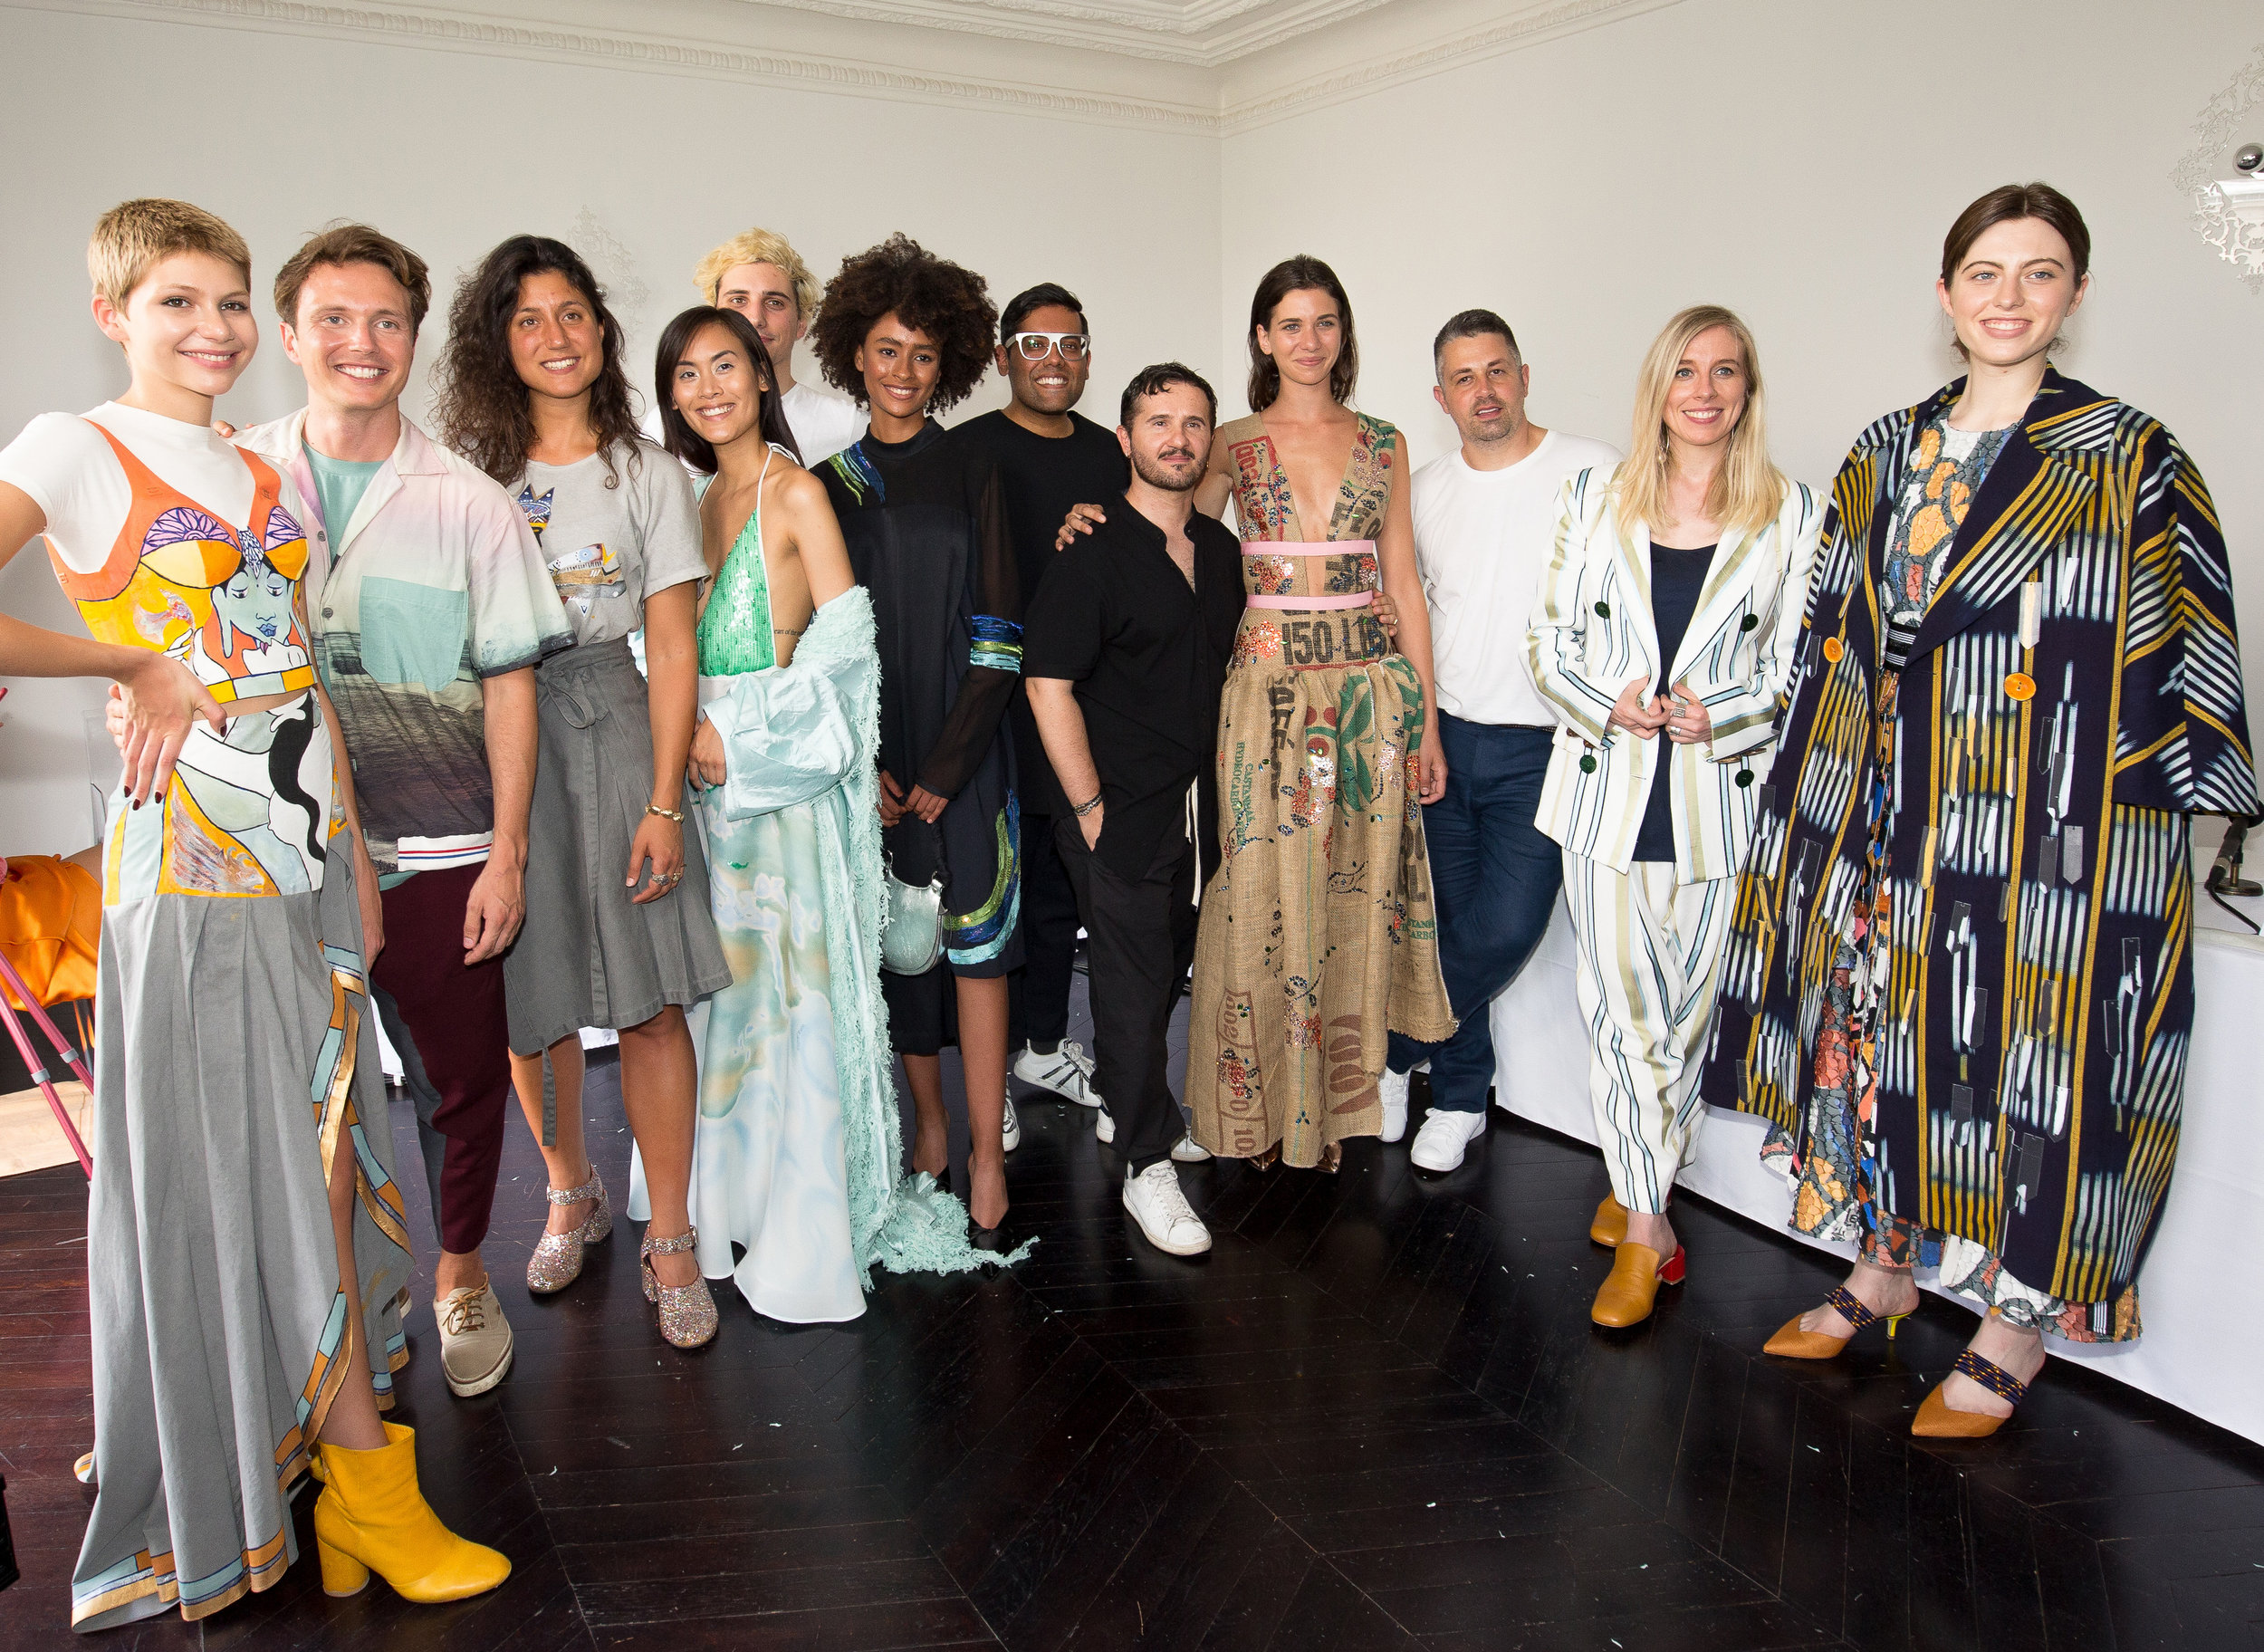 The 2018 finalists and their winning looks.